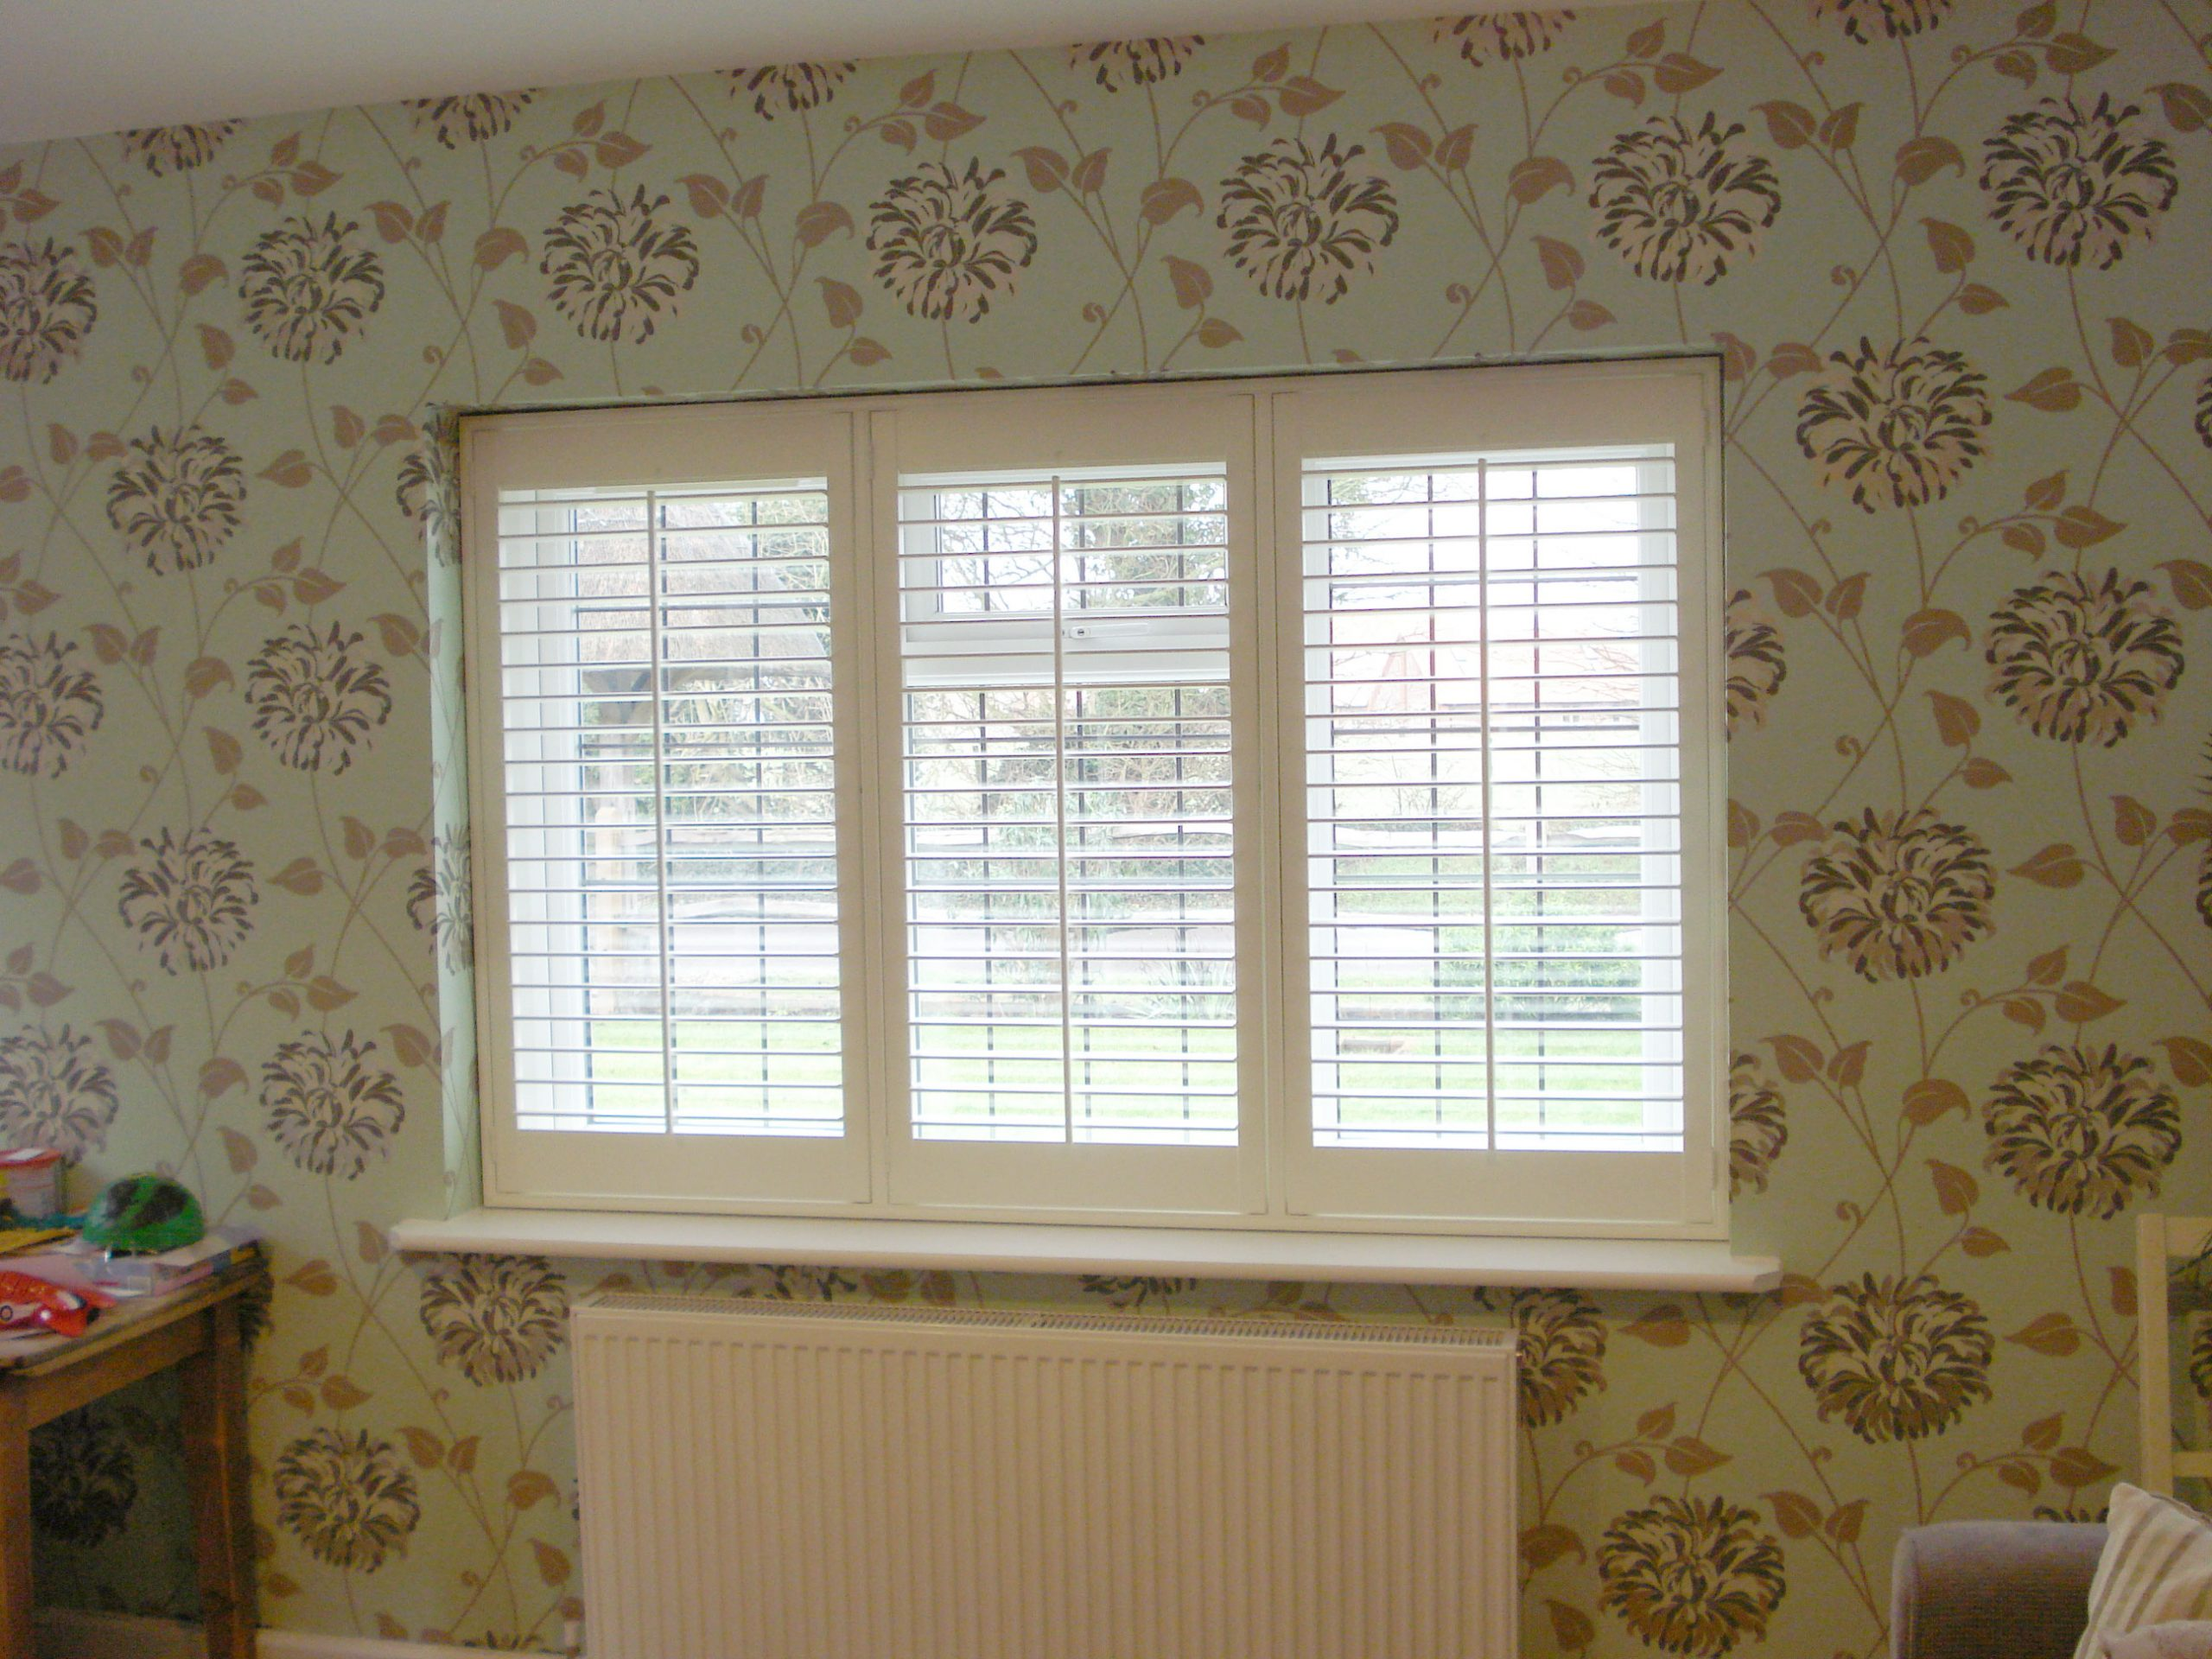 3 Section UPVC window with Shutters and Tposts